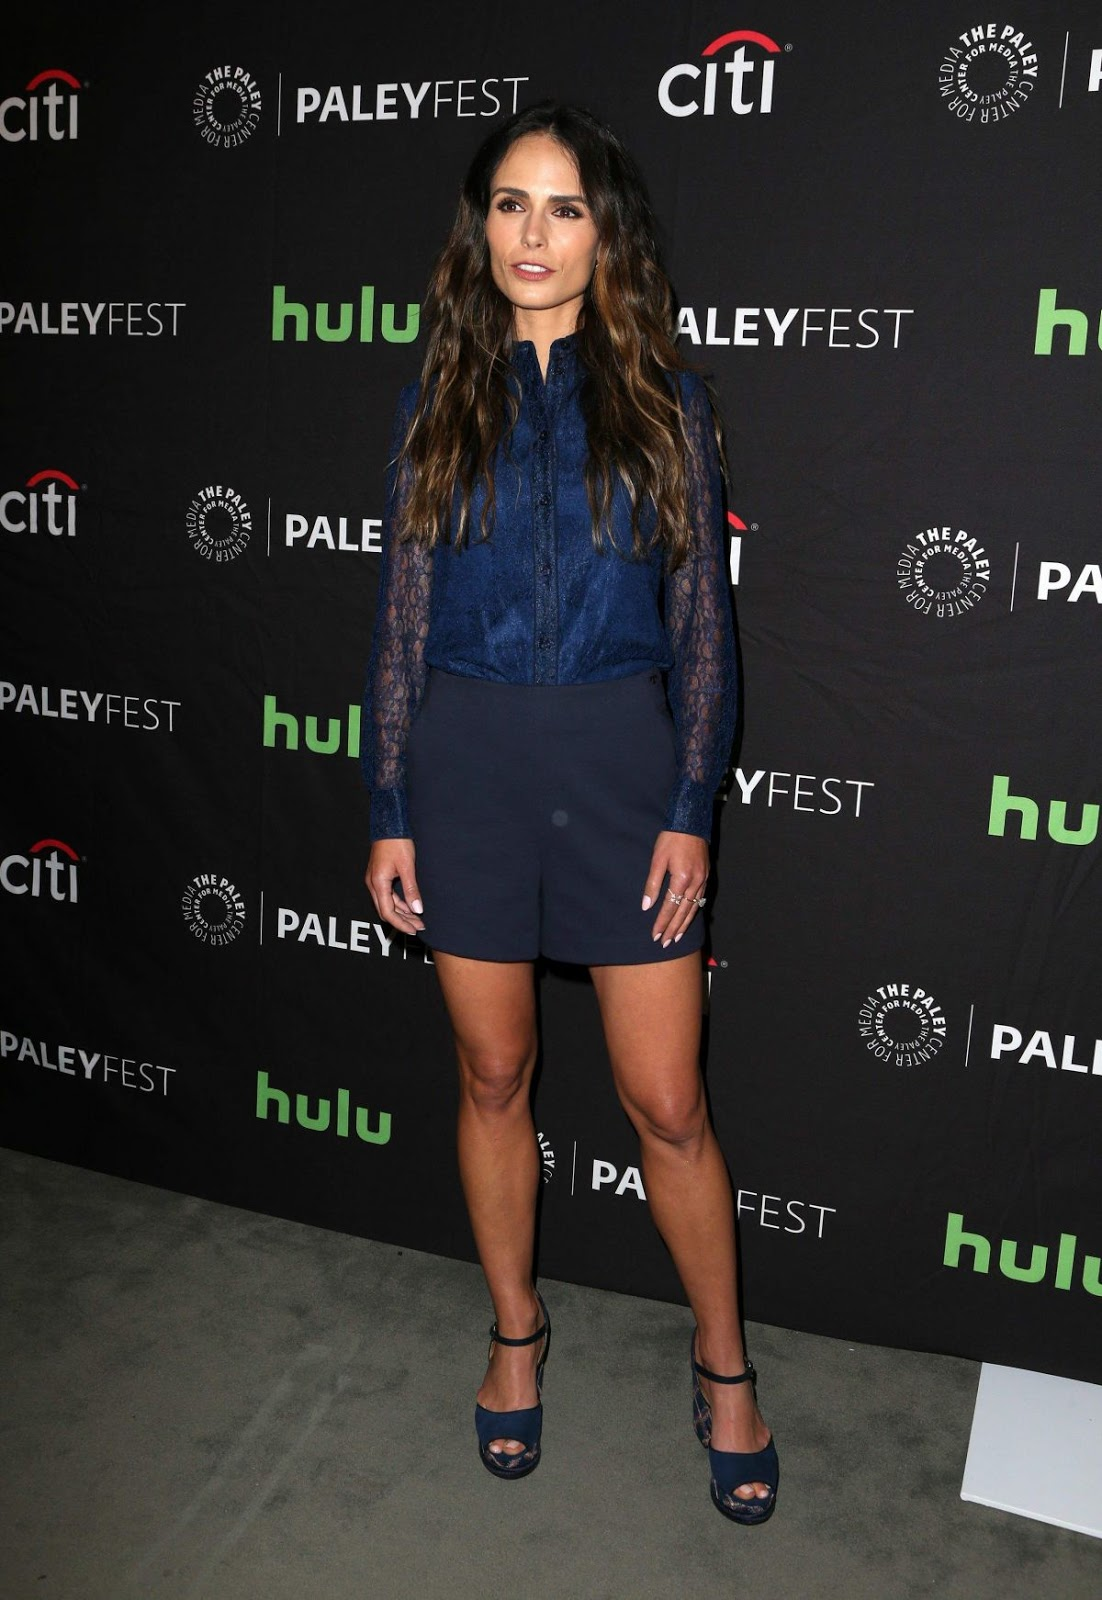 'Fast and Furious 8' actress Jordana Brewster At Paleyfest 2016 Fall Tv Preview In Beverly Hills